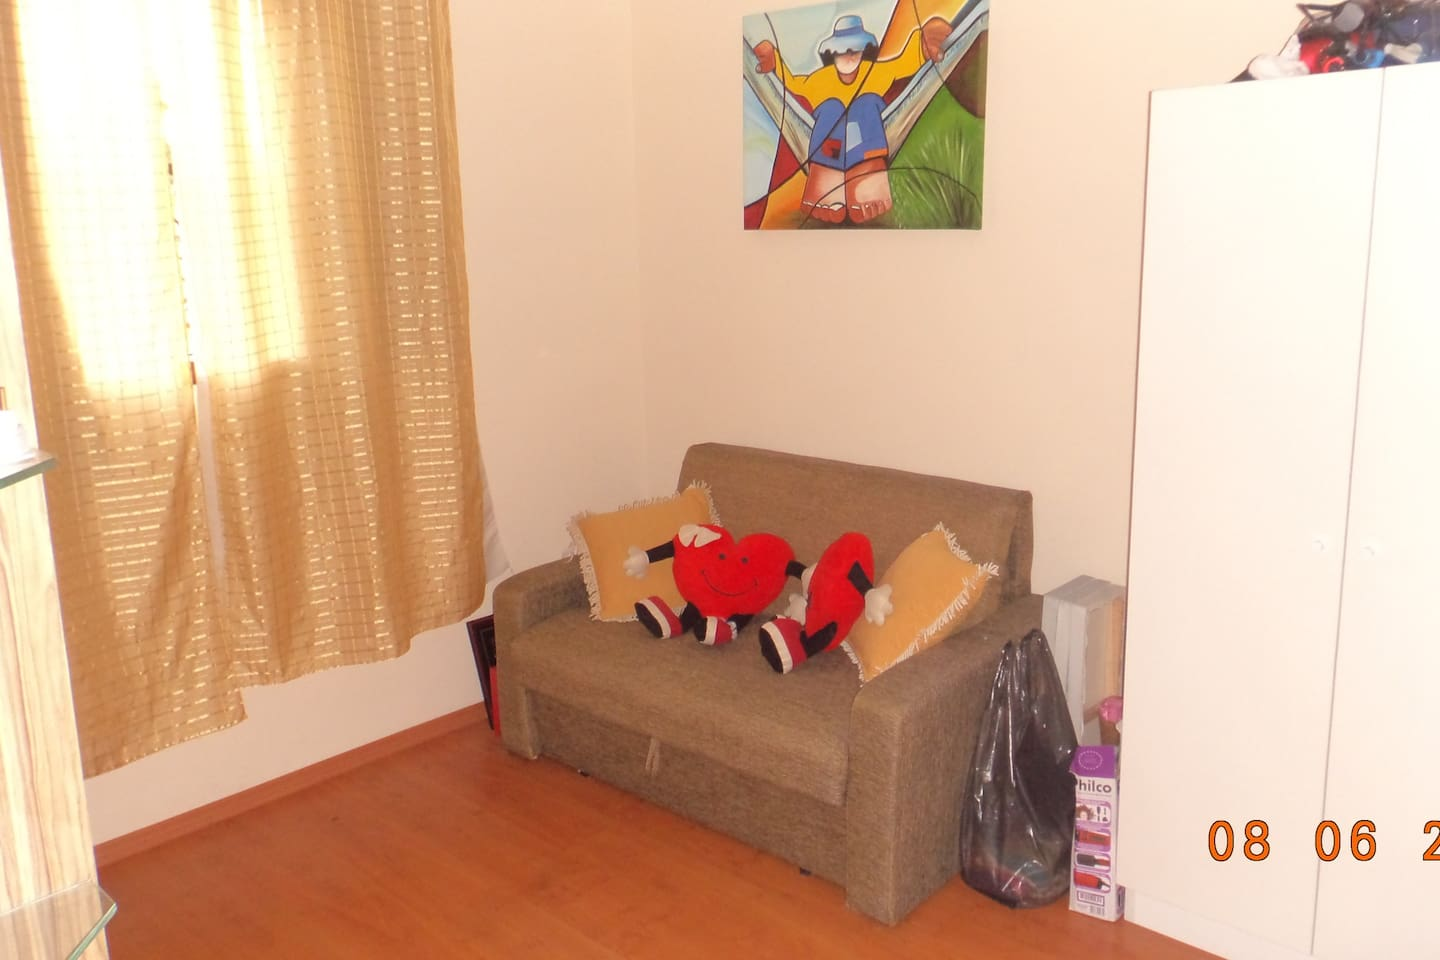 This is our guest room. In the background there is a sofa bed